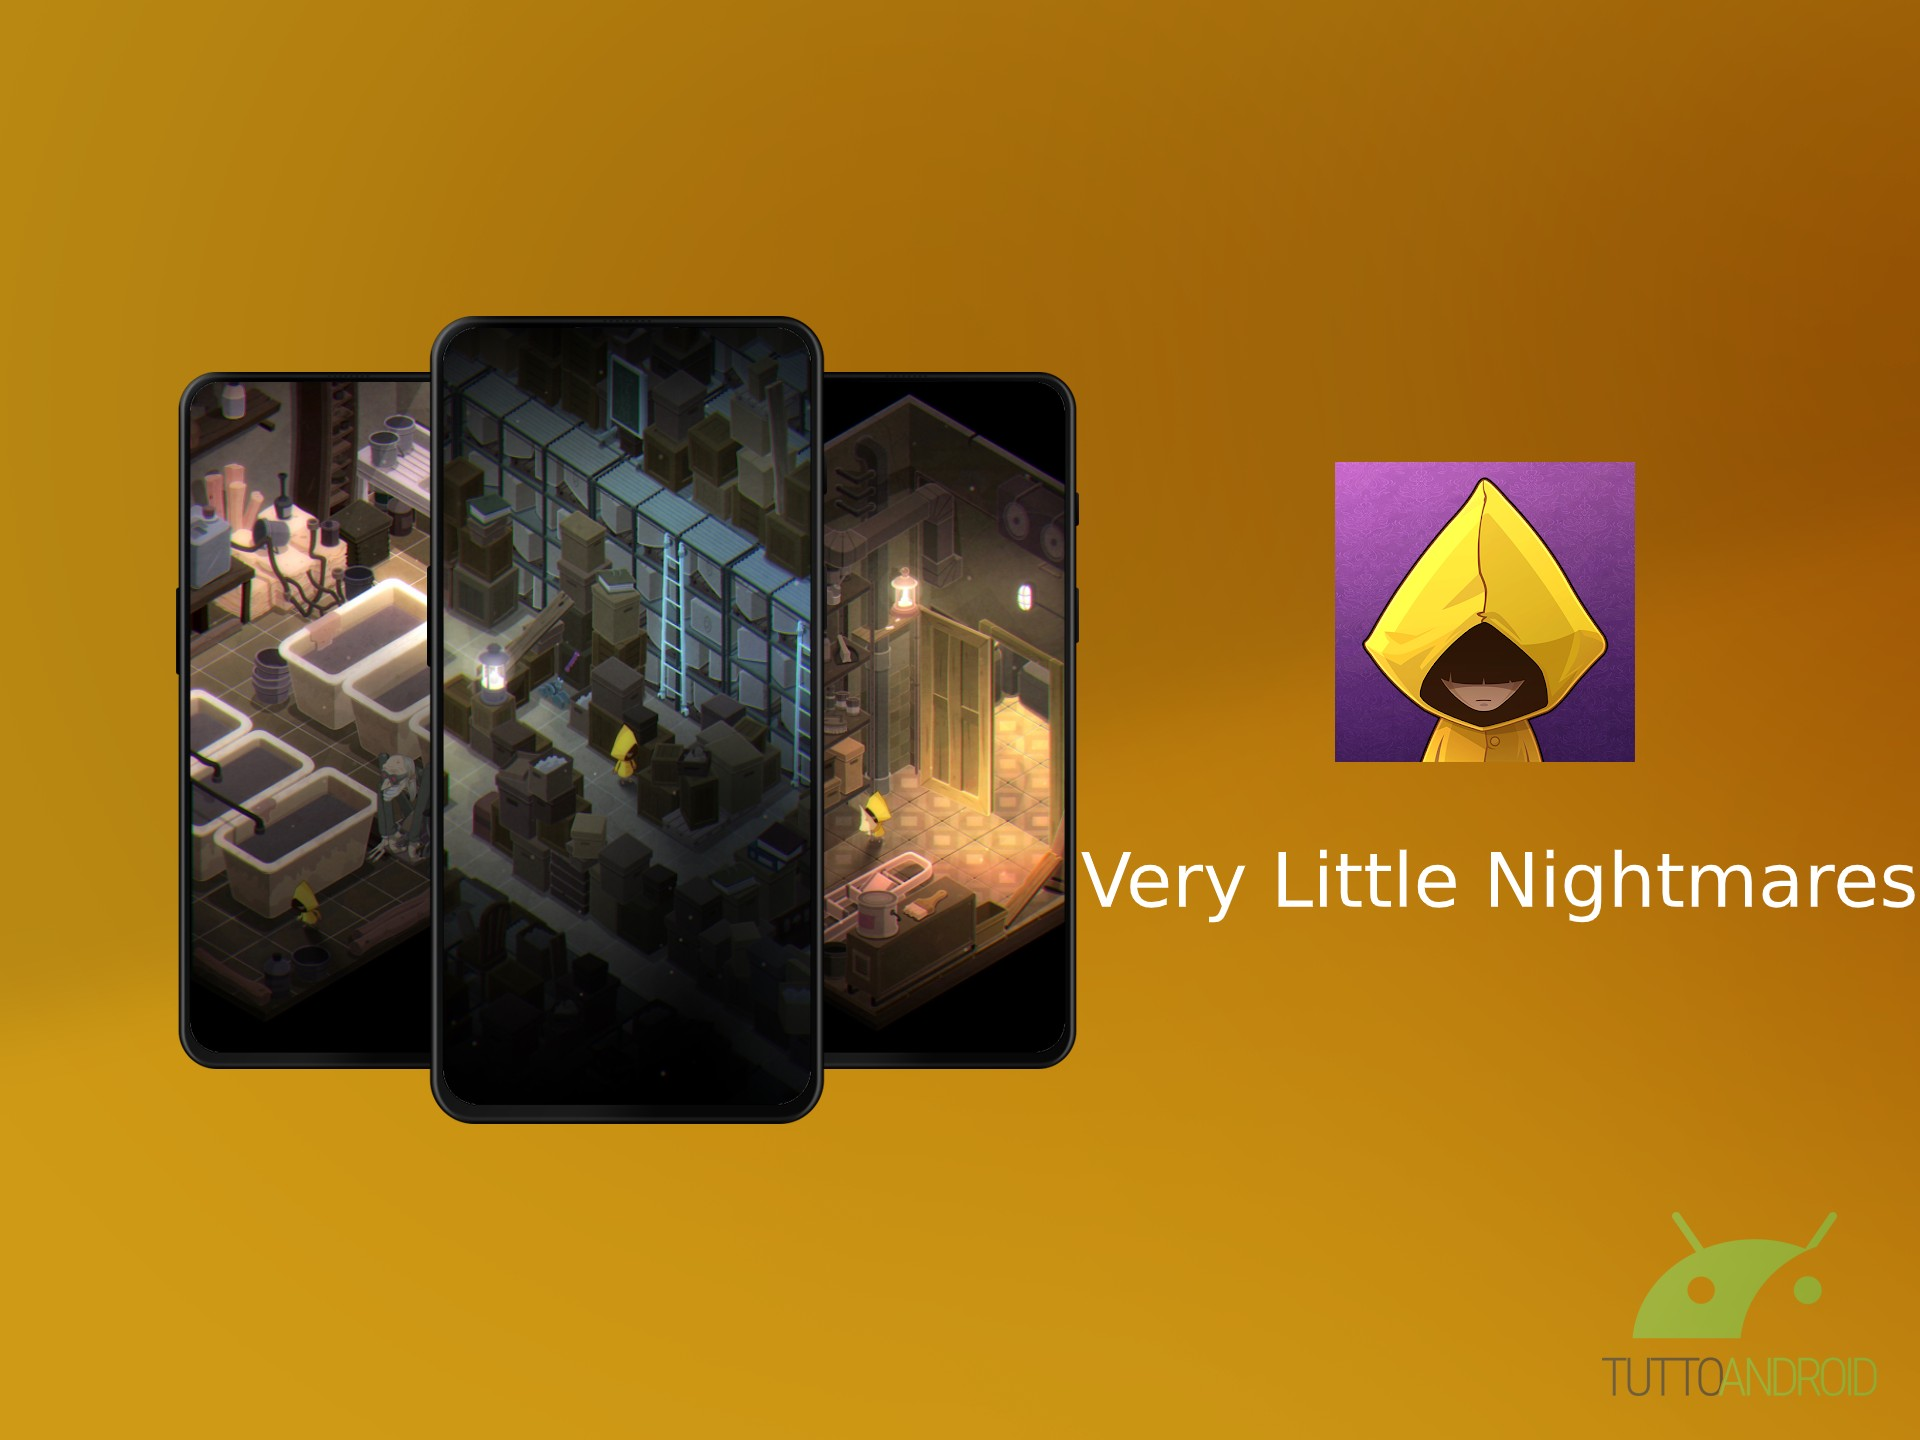 Very Little Nightmares approda su Android con nuovi enigmi e